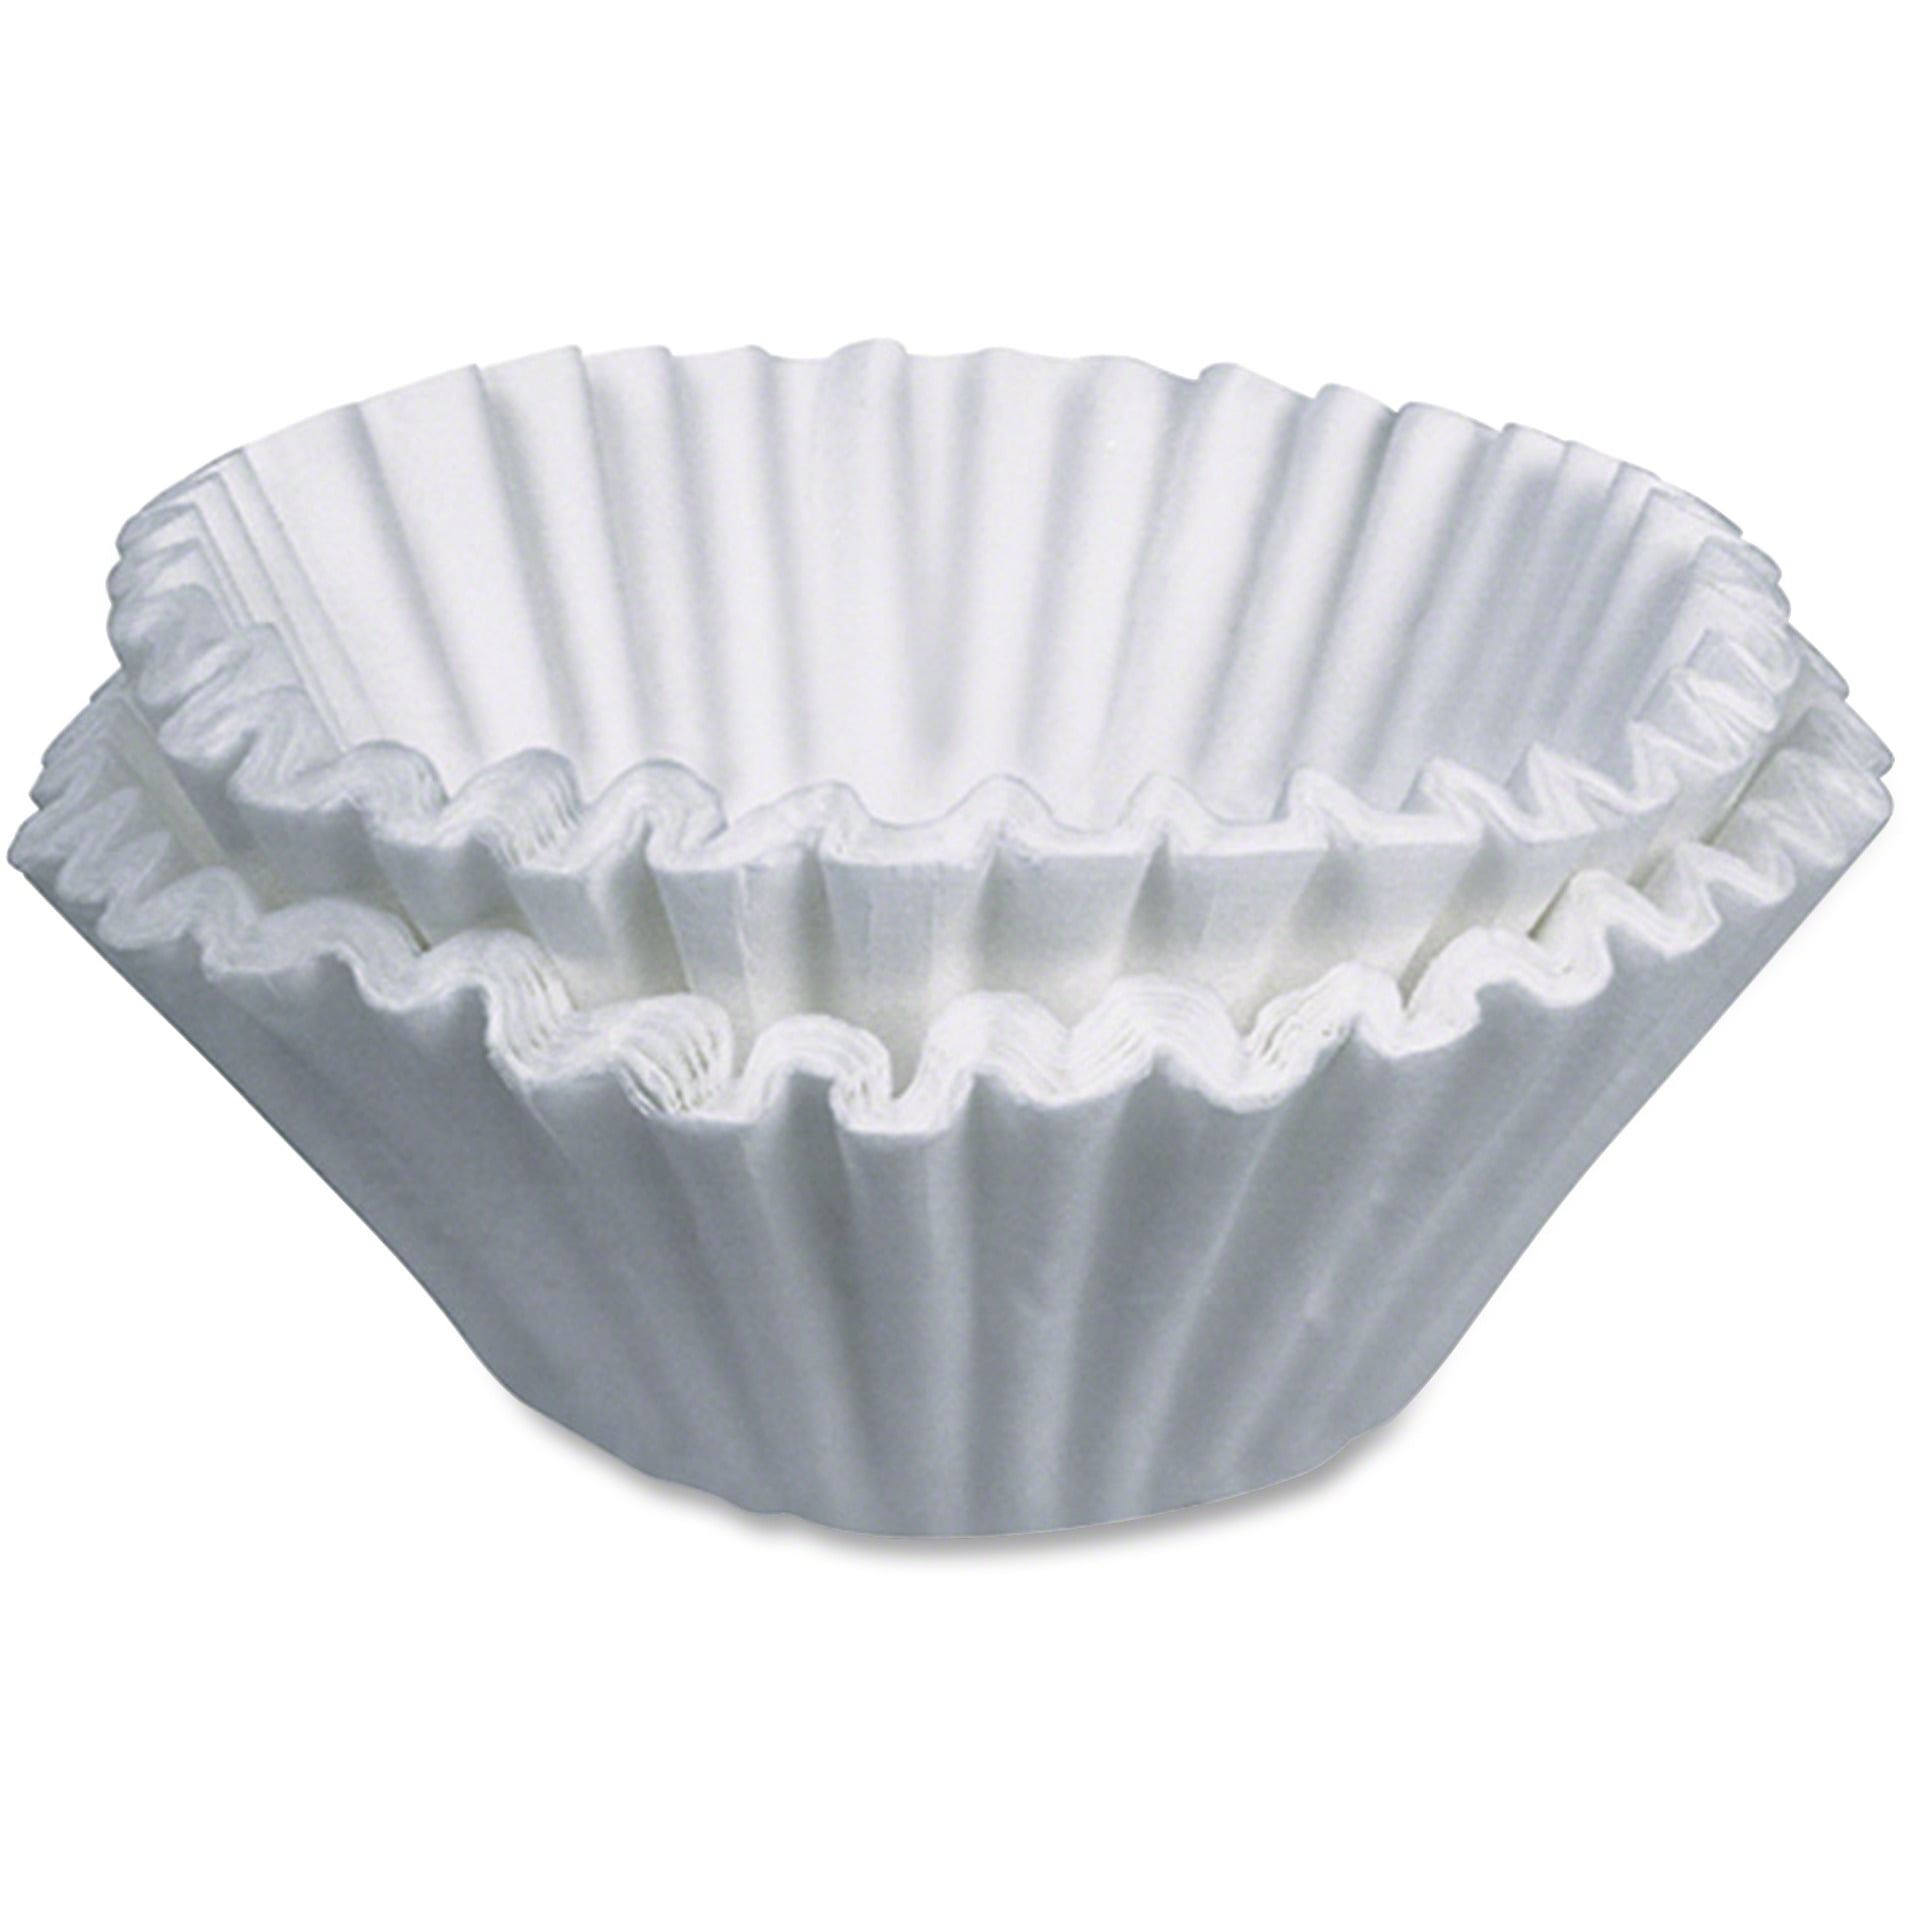 Bunn 12 Cup Coffee Filters, 100 Ct by Bunn-O-Matic Corporation